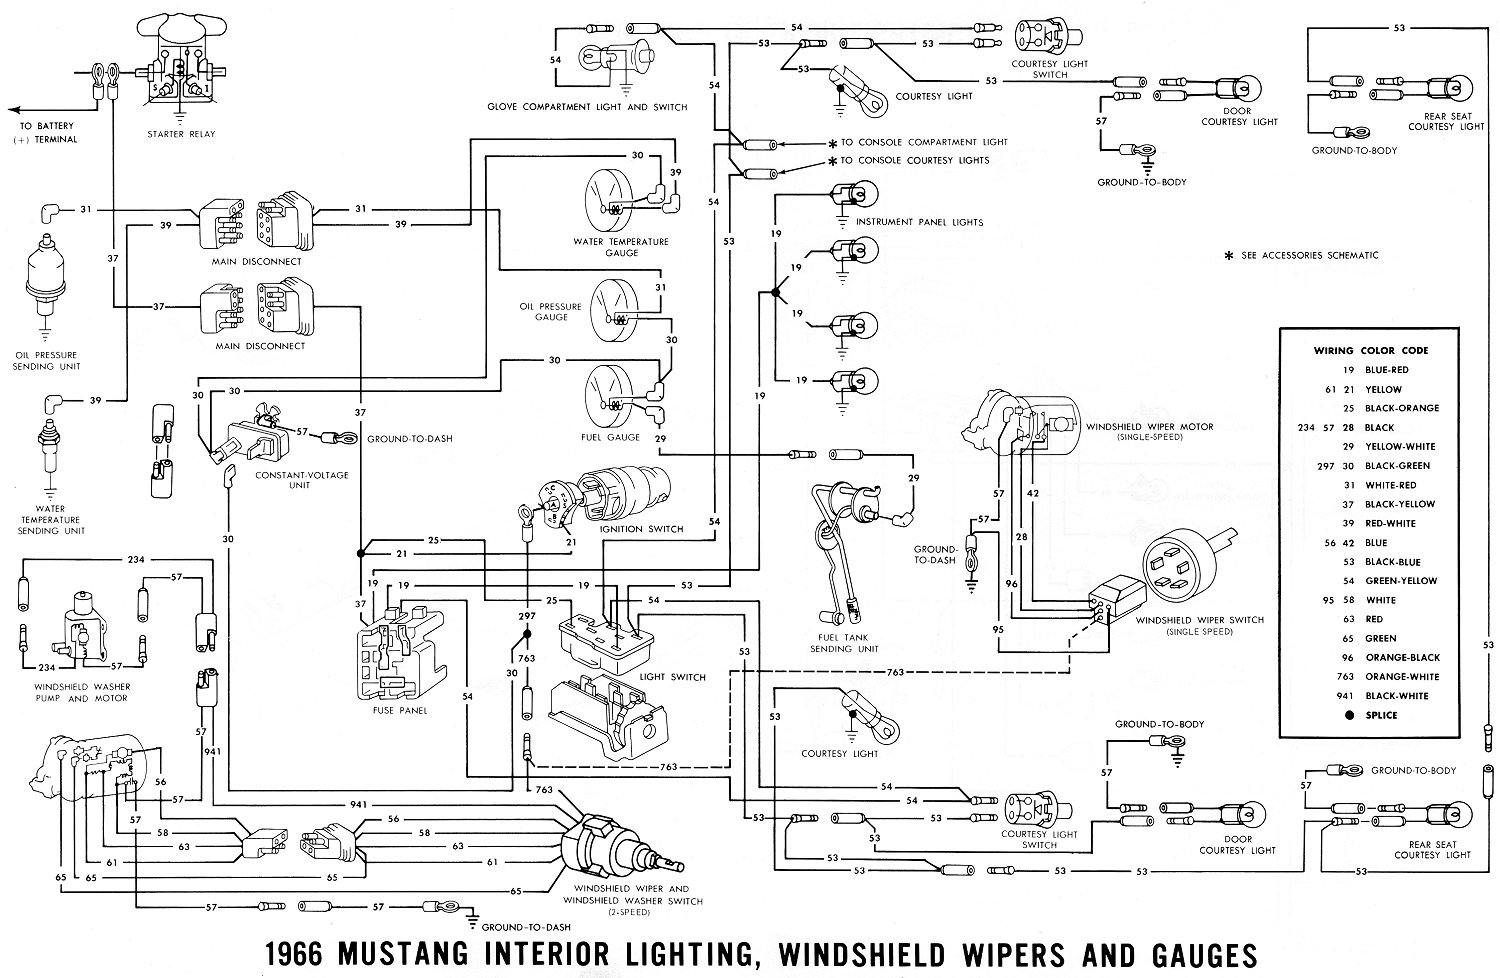 66inter1 1966 mustang wiring diagrams average joe restoration 1967 mustang wiring diagram at gsmportal.co